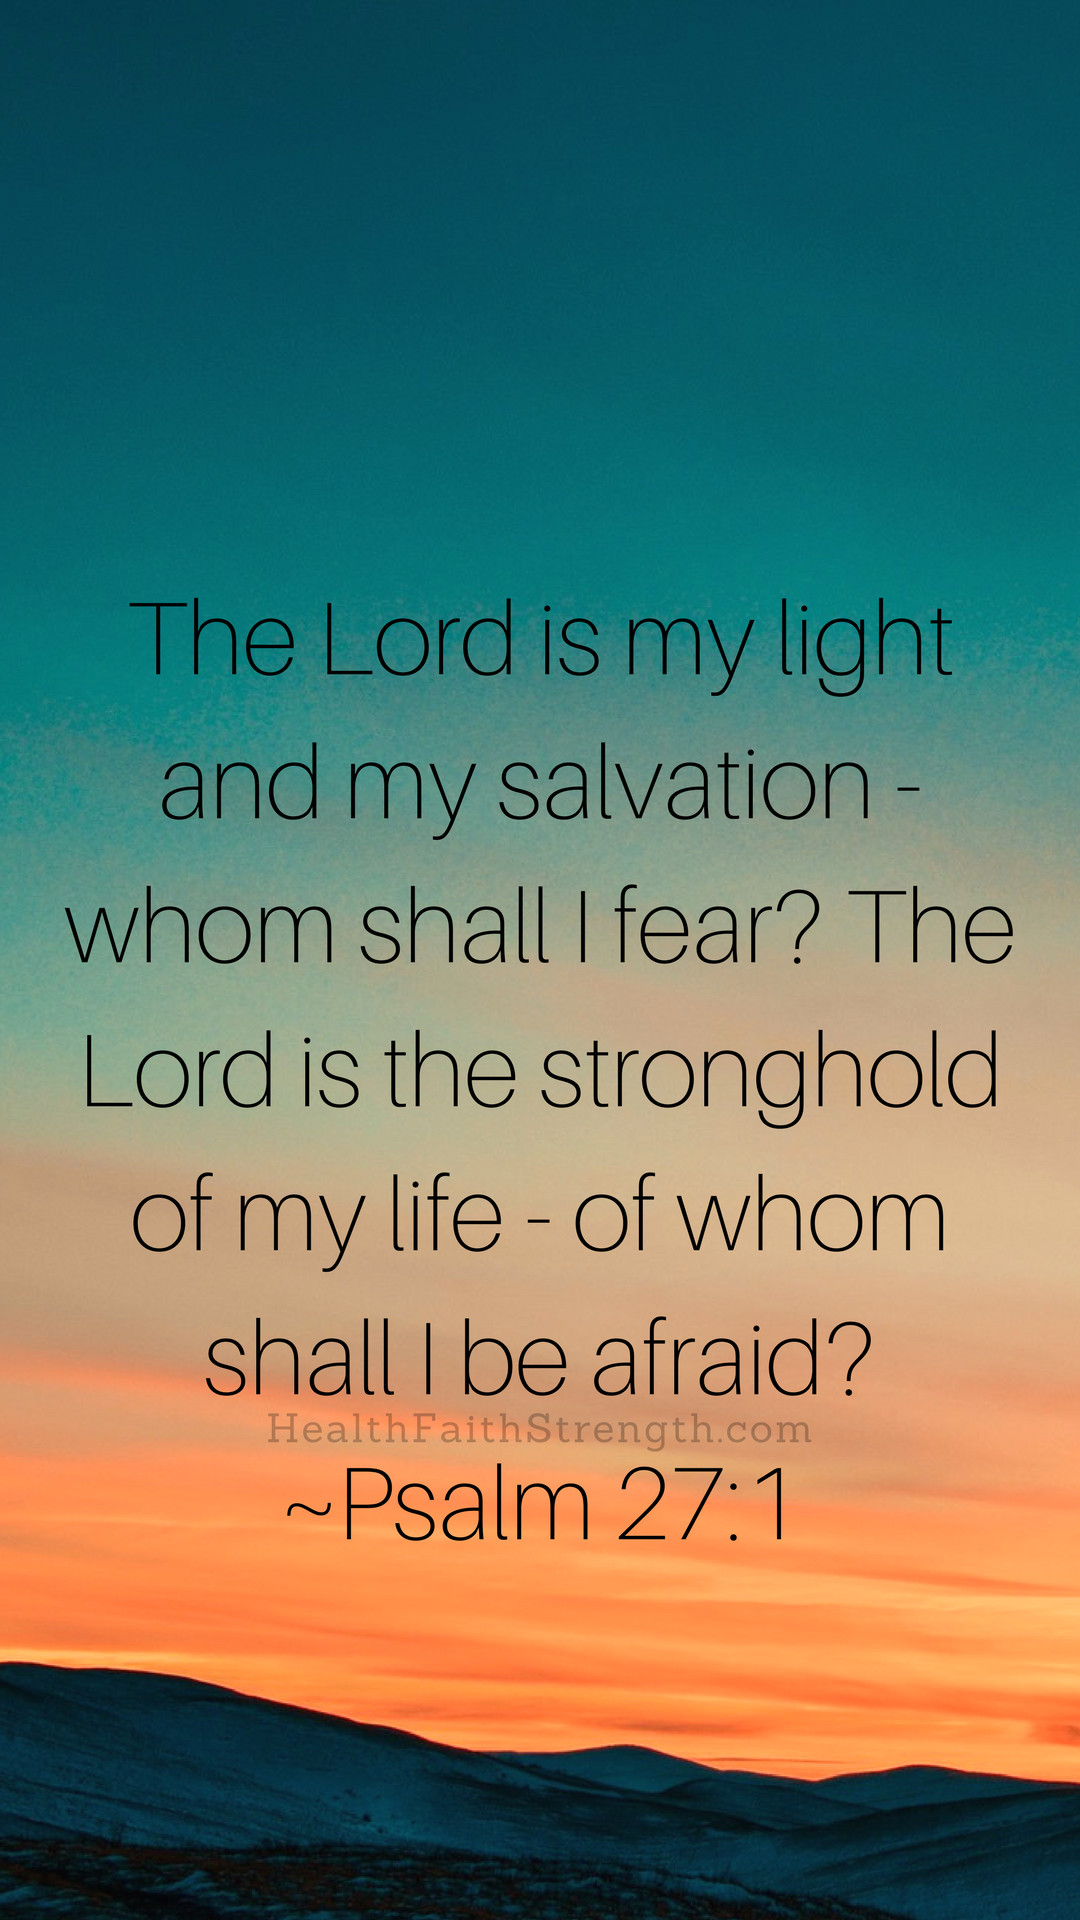 1080x1920 HealthFaithStrength.com - psalm 27:1 iphone wallpaper ...